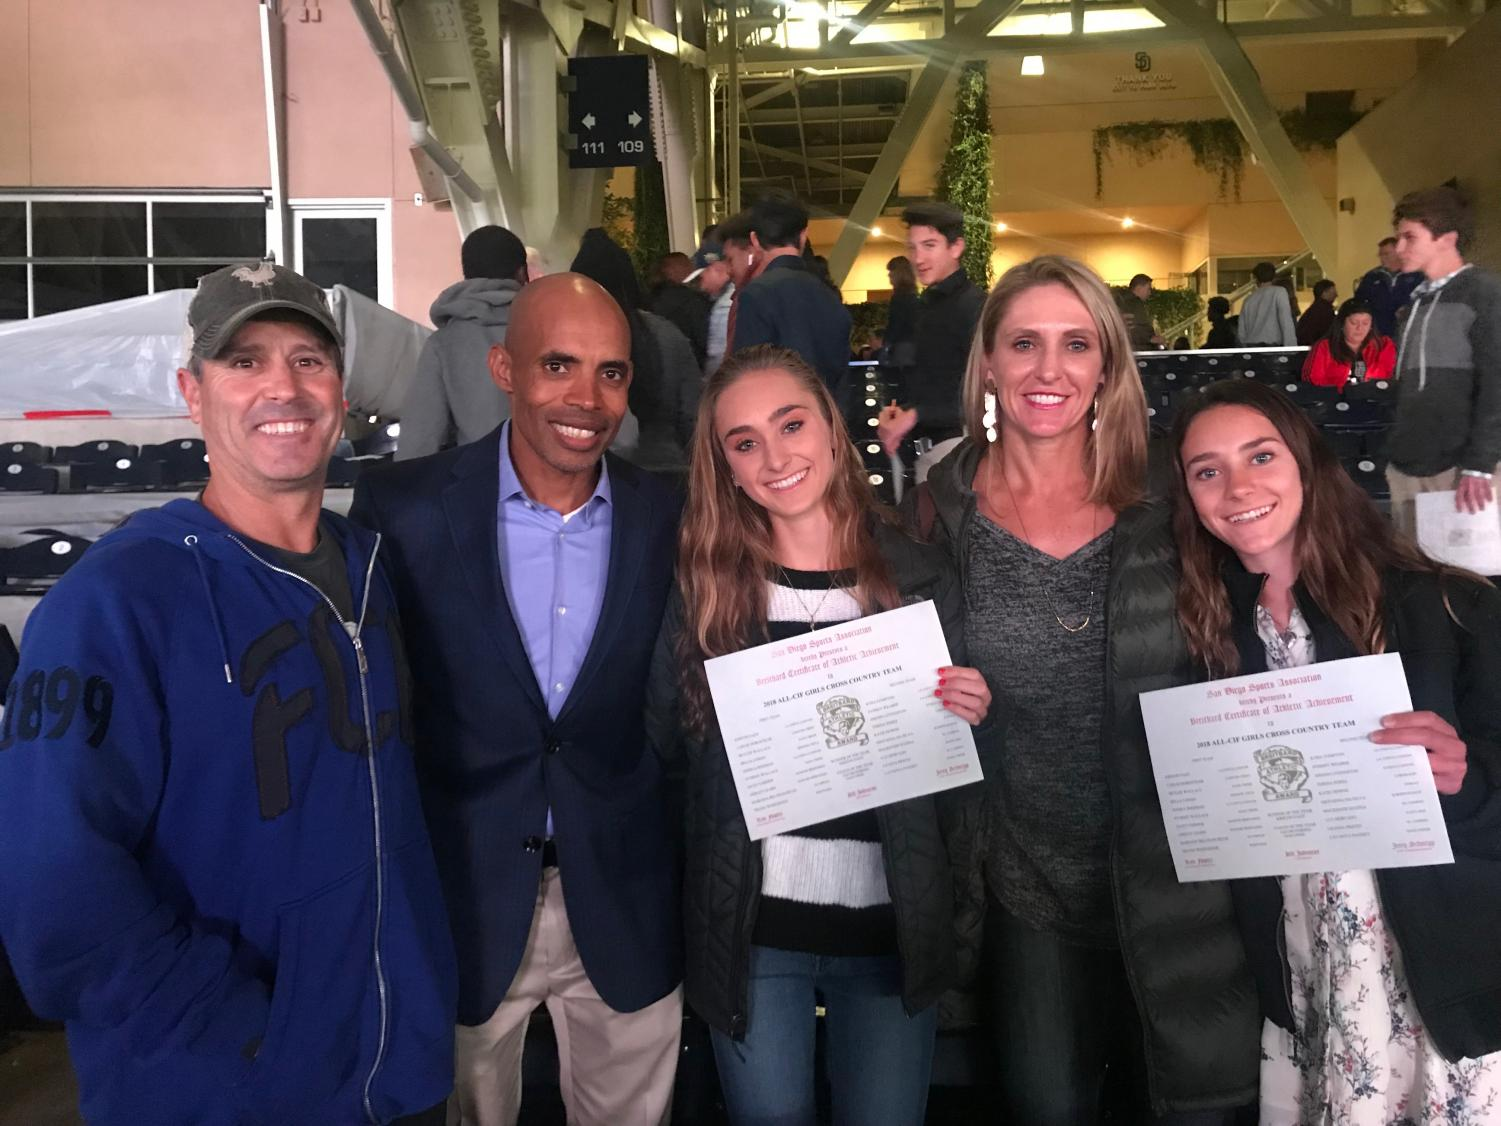 Junior+Skyler+Wallace+and+freshman+Stormy+Wallace+meet+Olympic+runner+Meb+Keflezighi.+The+girls+attended+Petco+Park+last+Wednesday+to+receive+the+award+of+All+CIF+for+the+2018+Cross+Country+season.